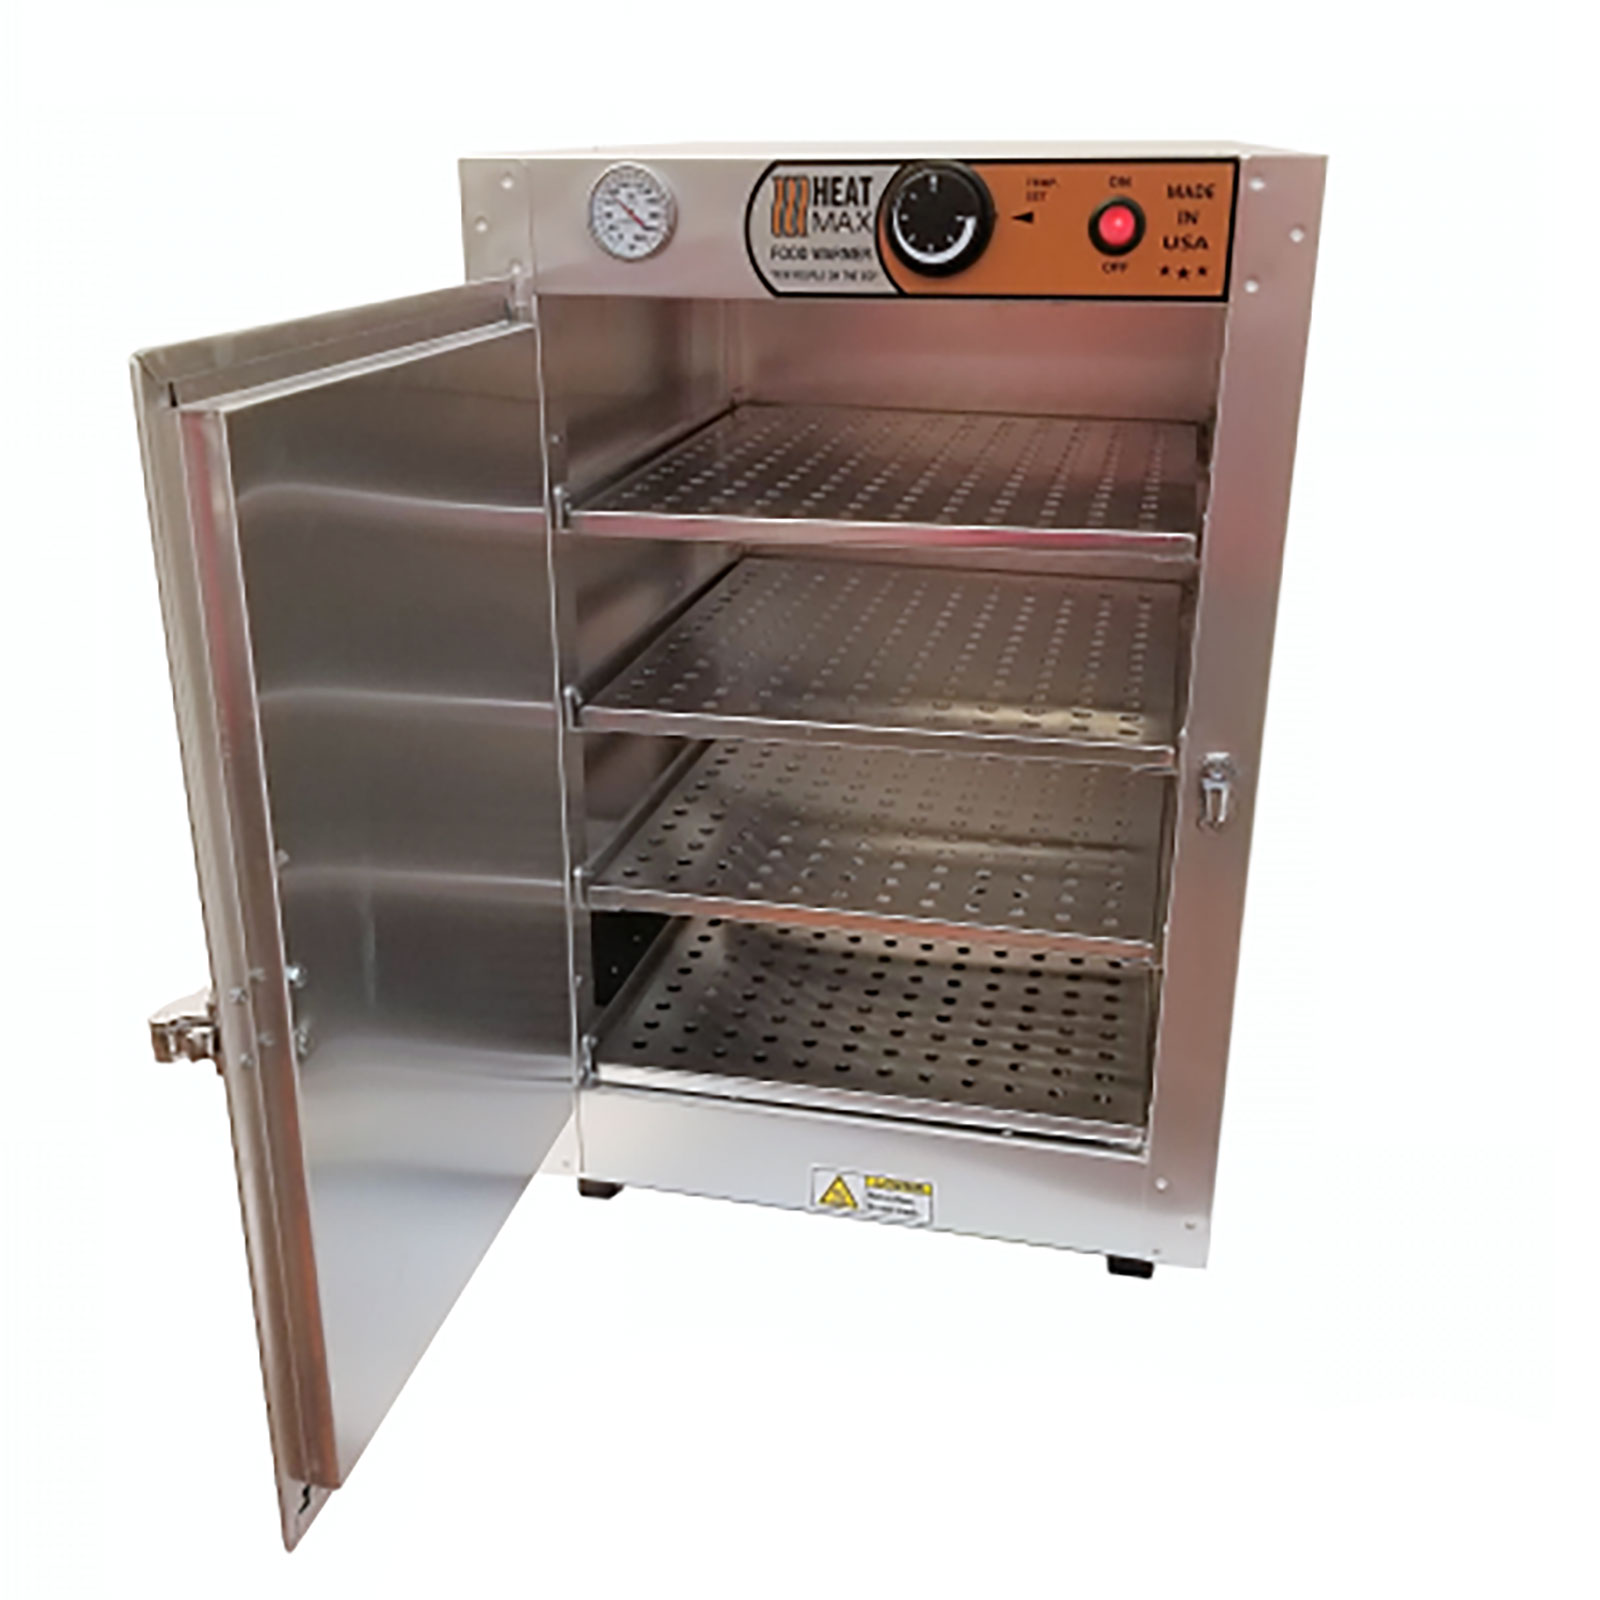 HeatMax Commercial Food Pastry Warming Case Aluminum 16x16x24 Hot Box  Cabinet